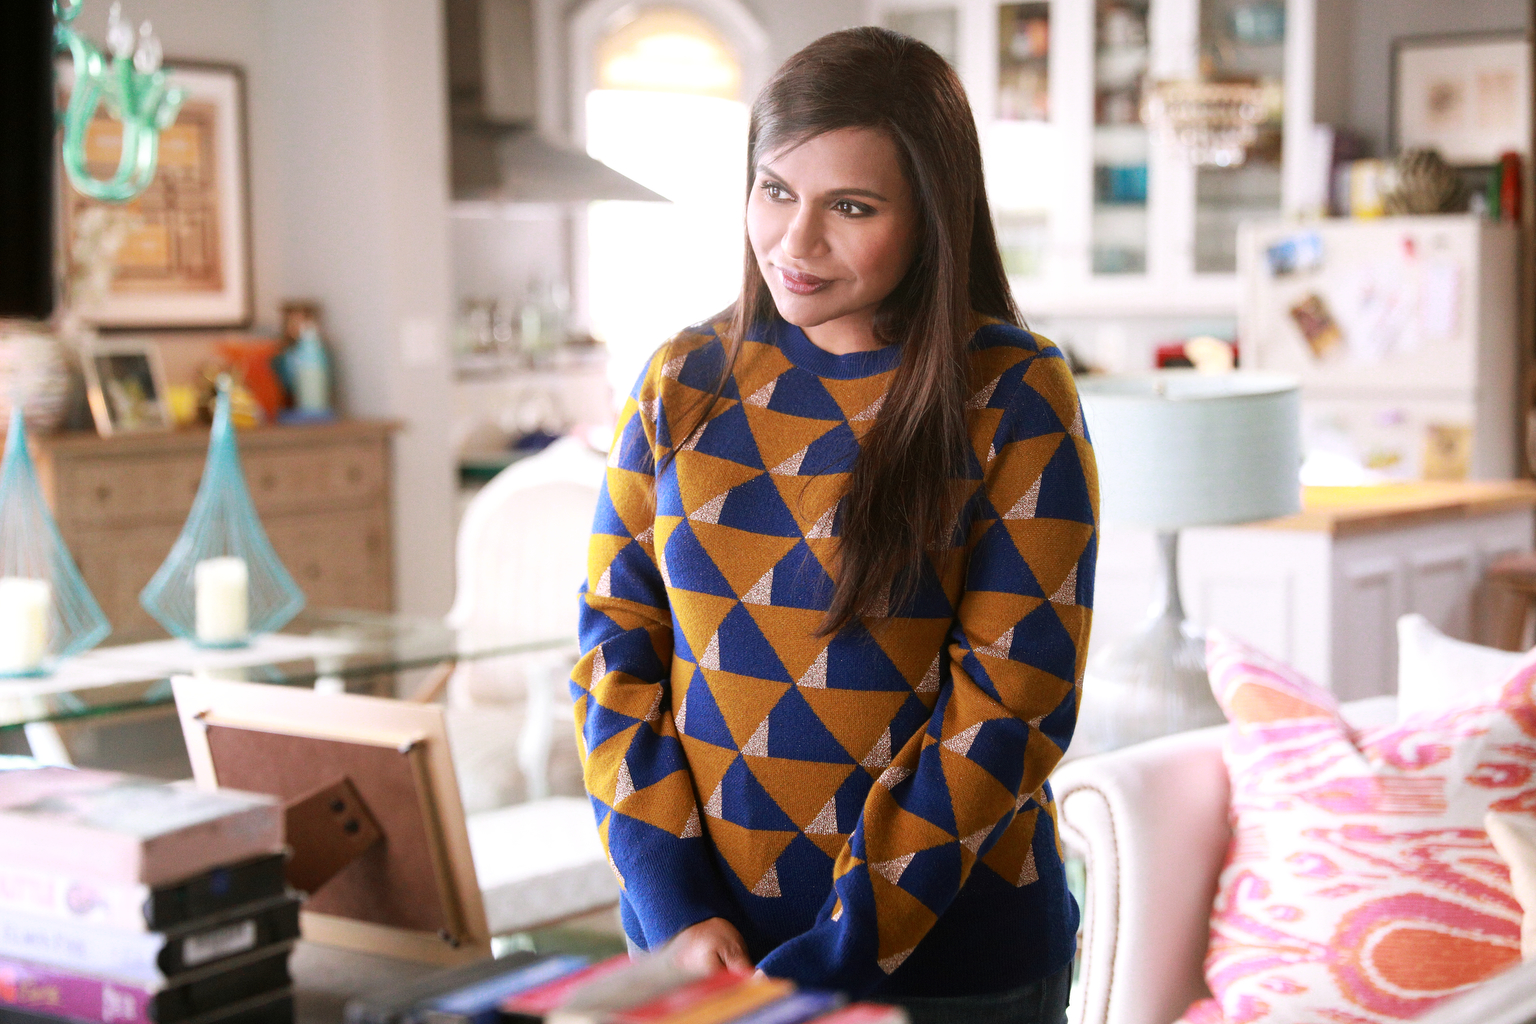 Six Things You Need to Know about the Final Season of The Mindy Project